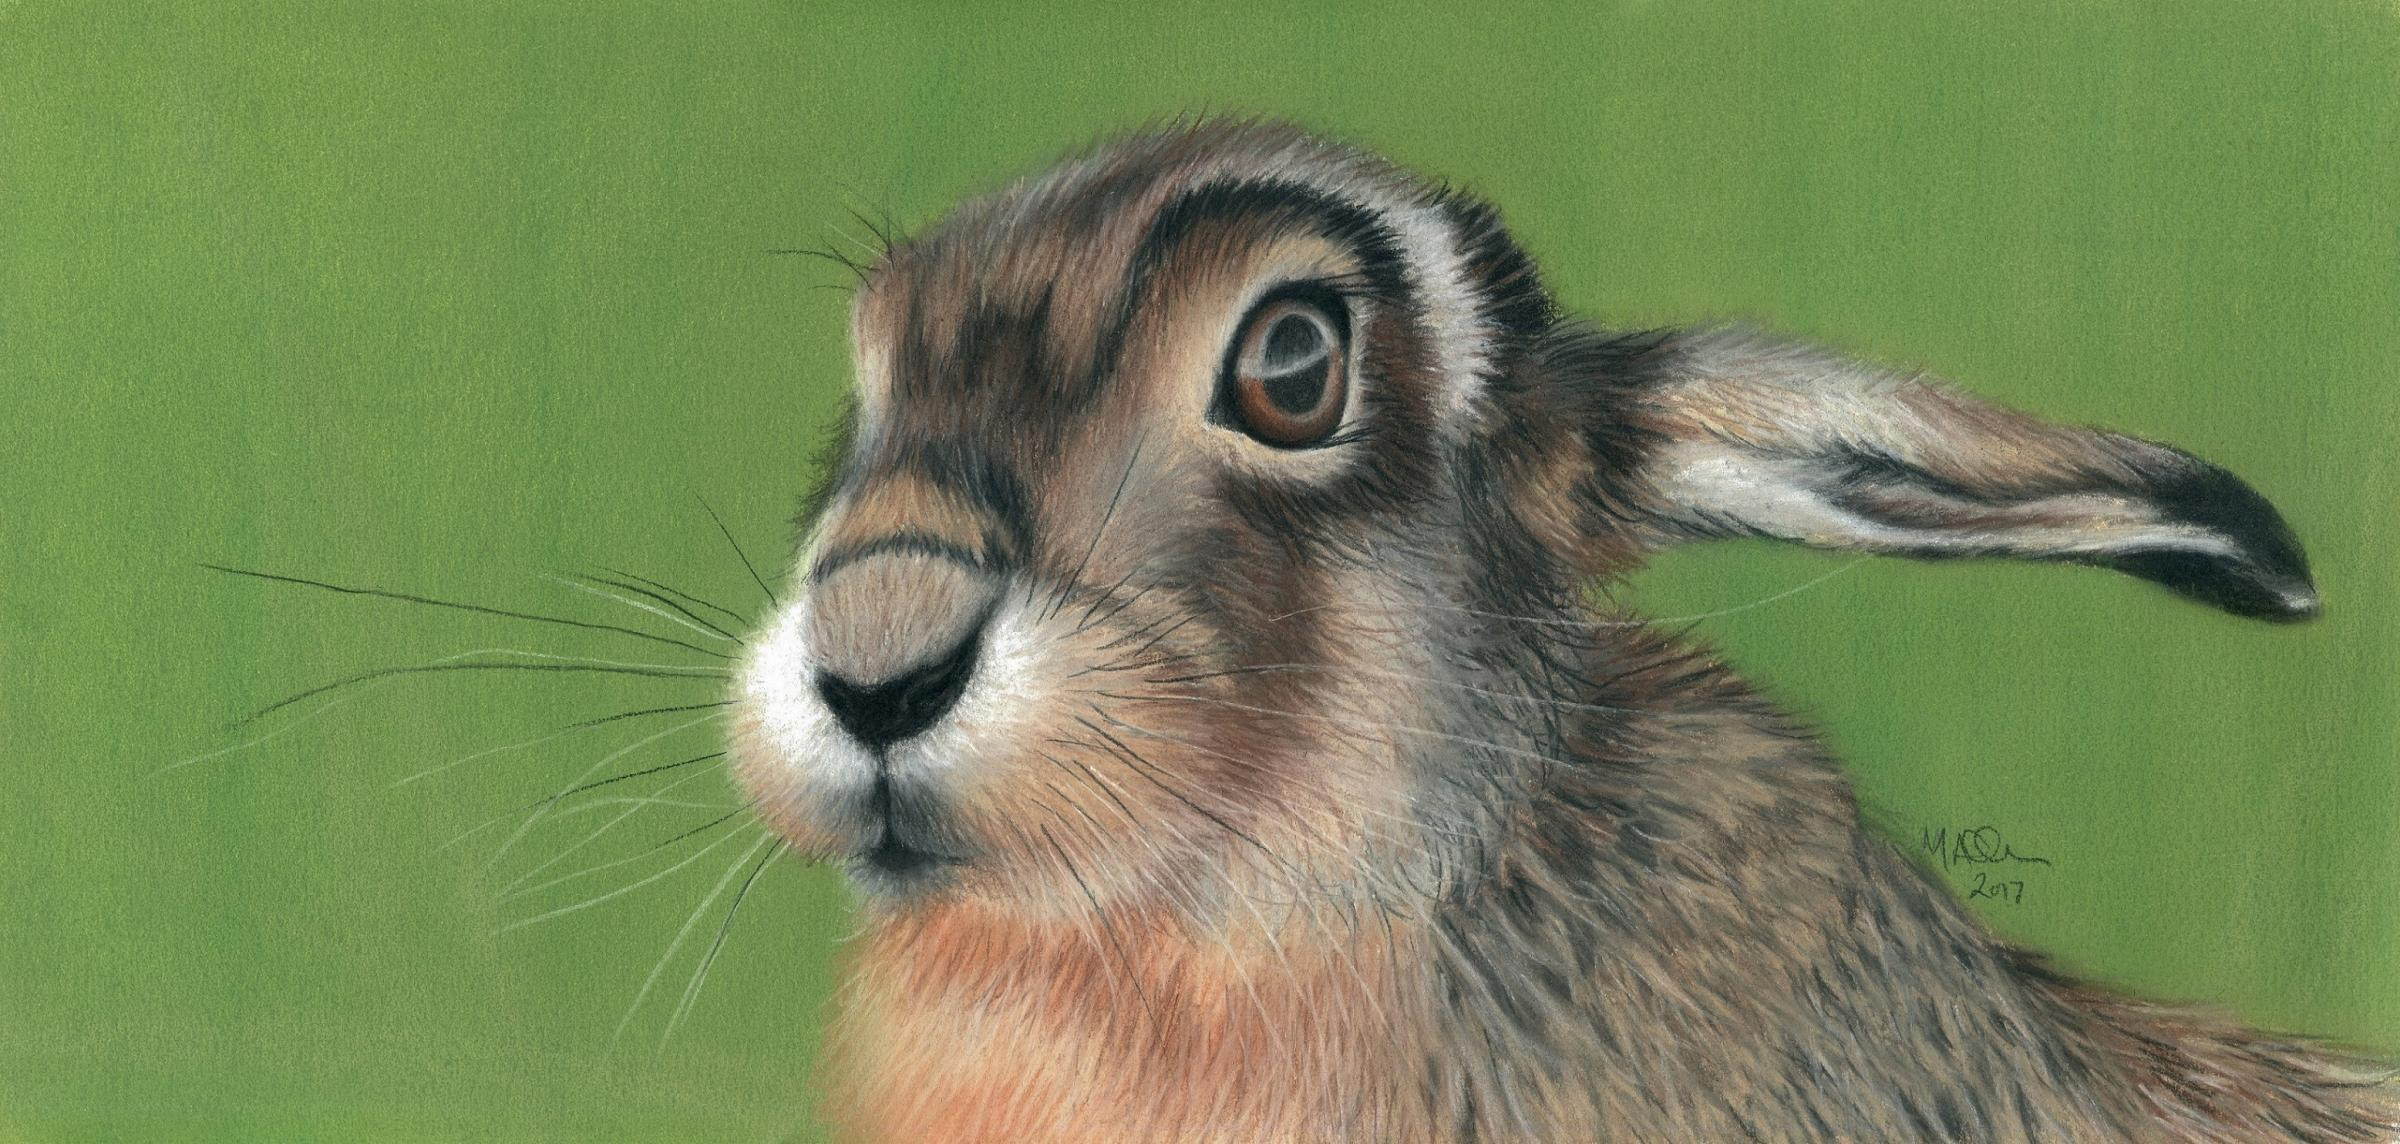 HOP: Hare in the long grass by Mandy Allan